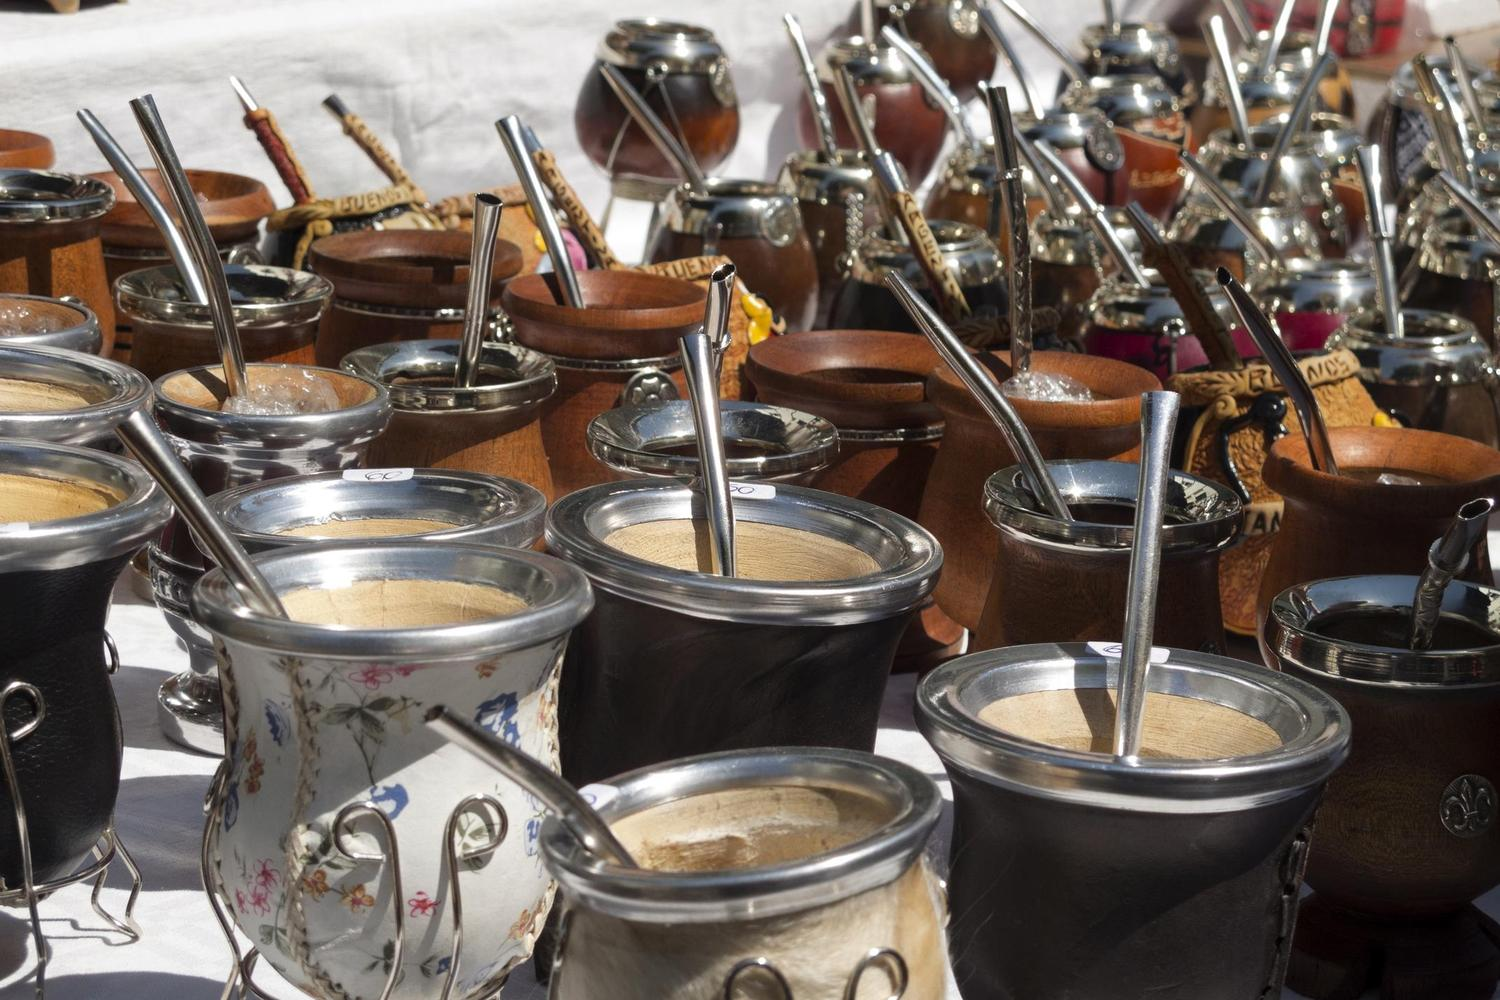 Mate cups for sale at a street market in Buenos Aires